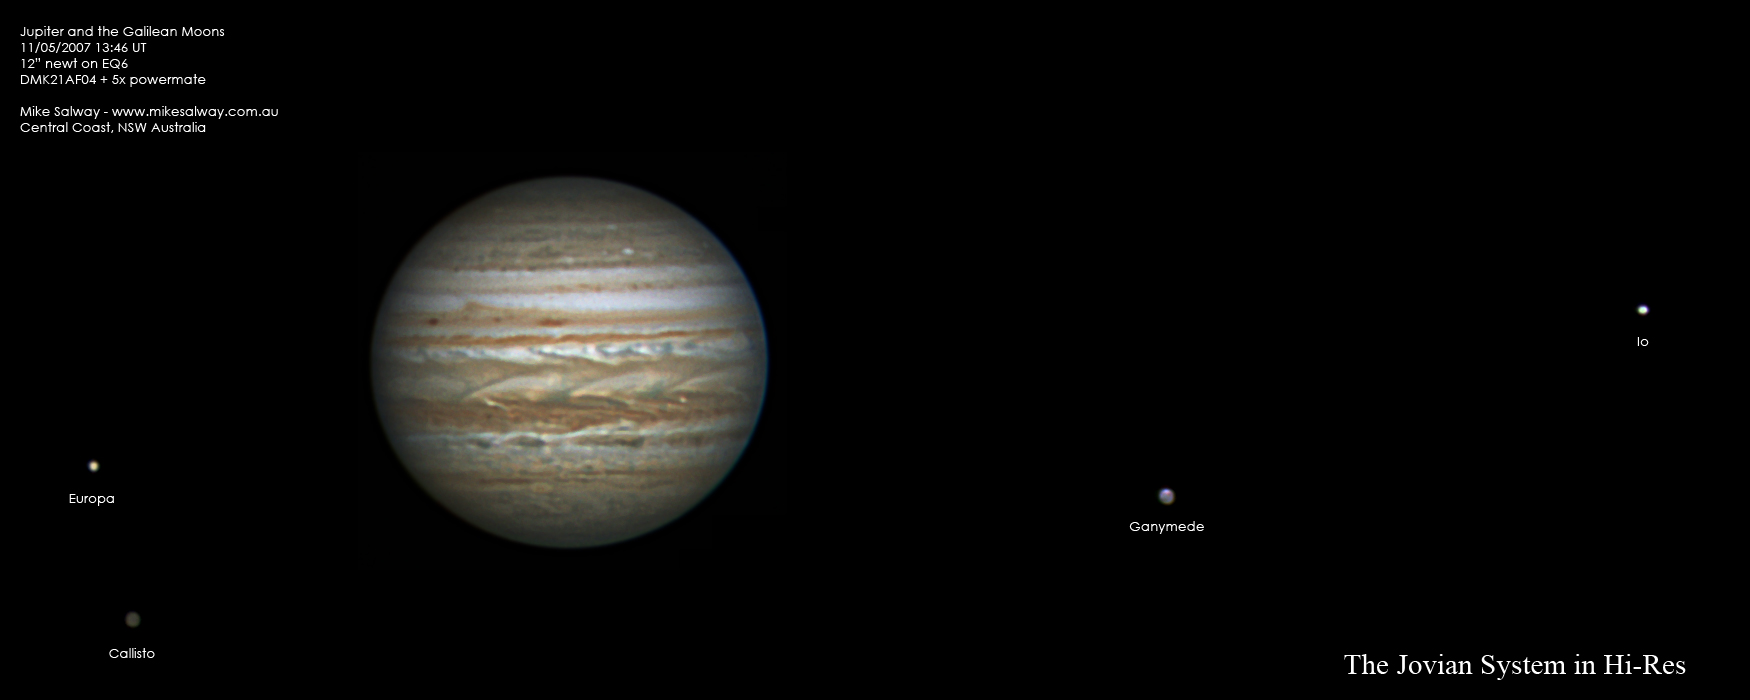 jupiter and its galilean moons Nasa's juno spacecraft captured a unique time-lapse movie of the galilean satellites in motion about jupiter the movie begins on june 12th with juno 10 mill.